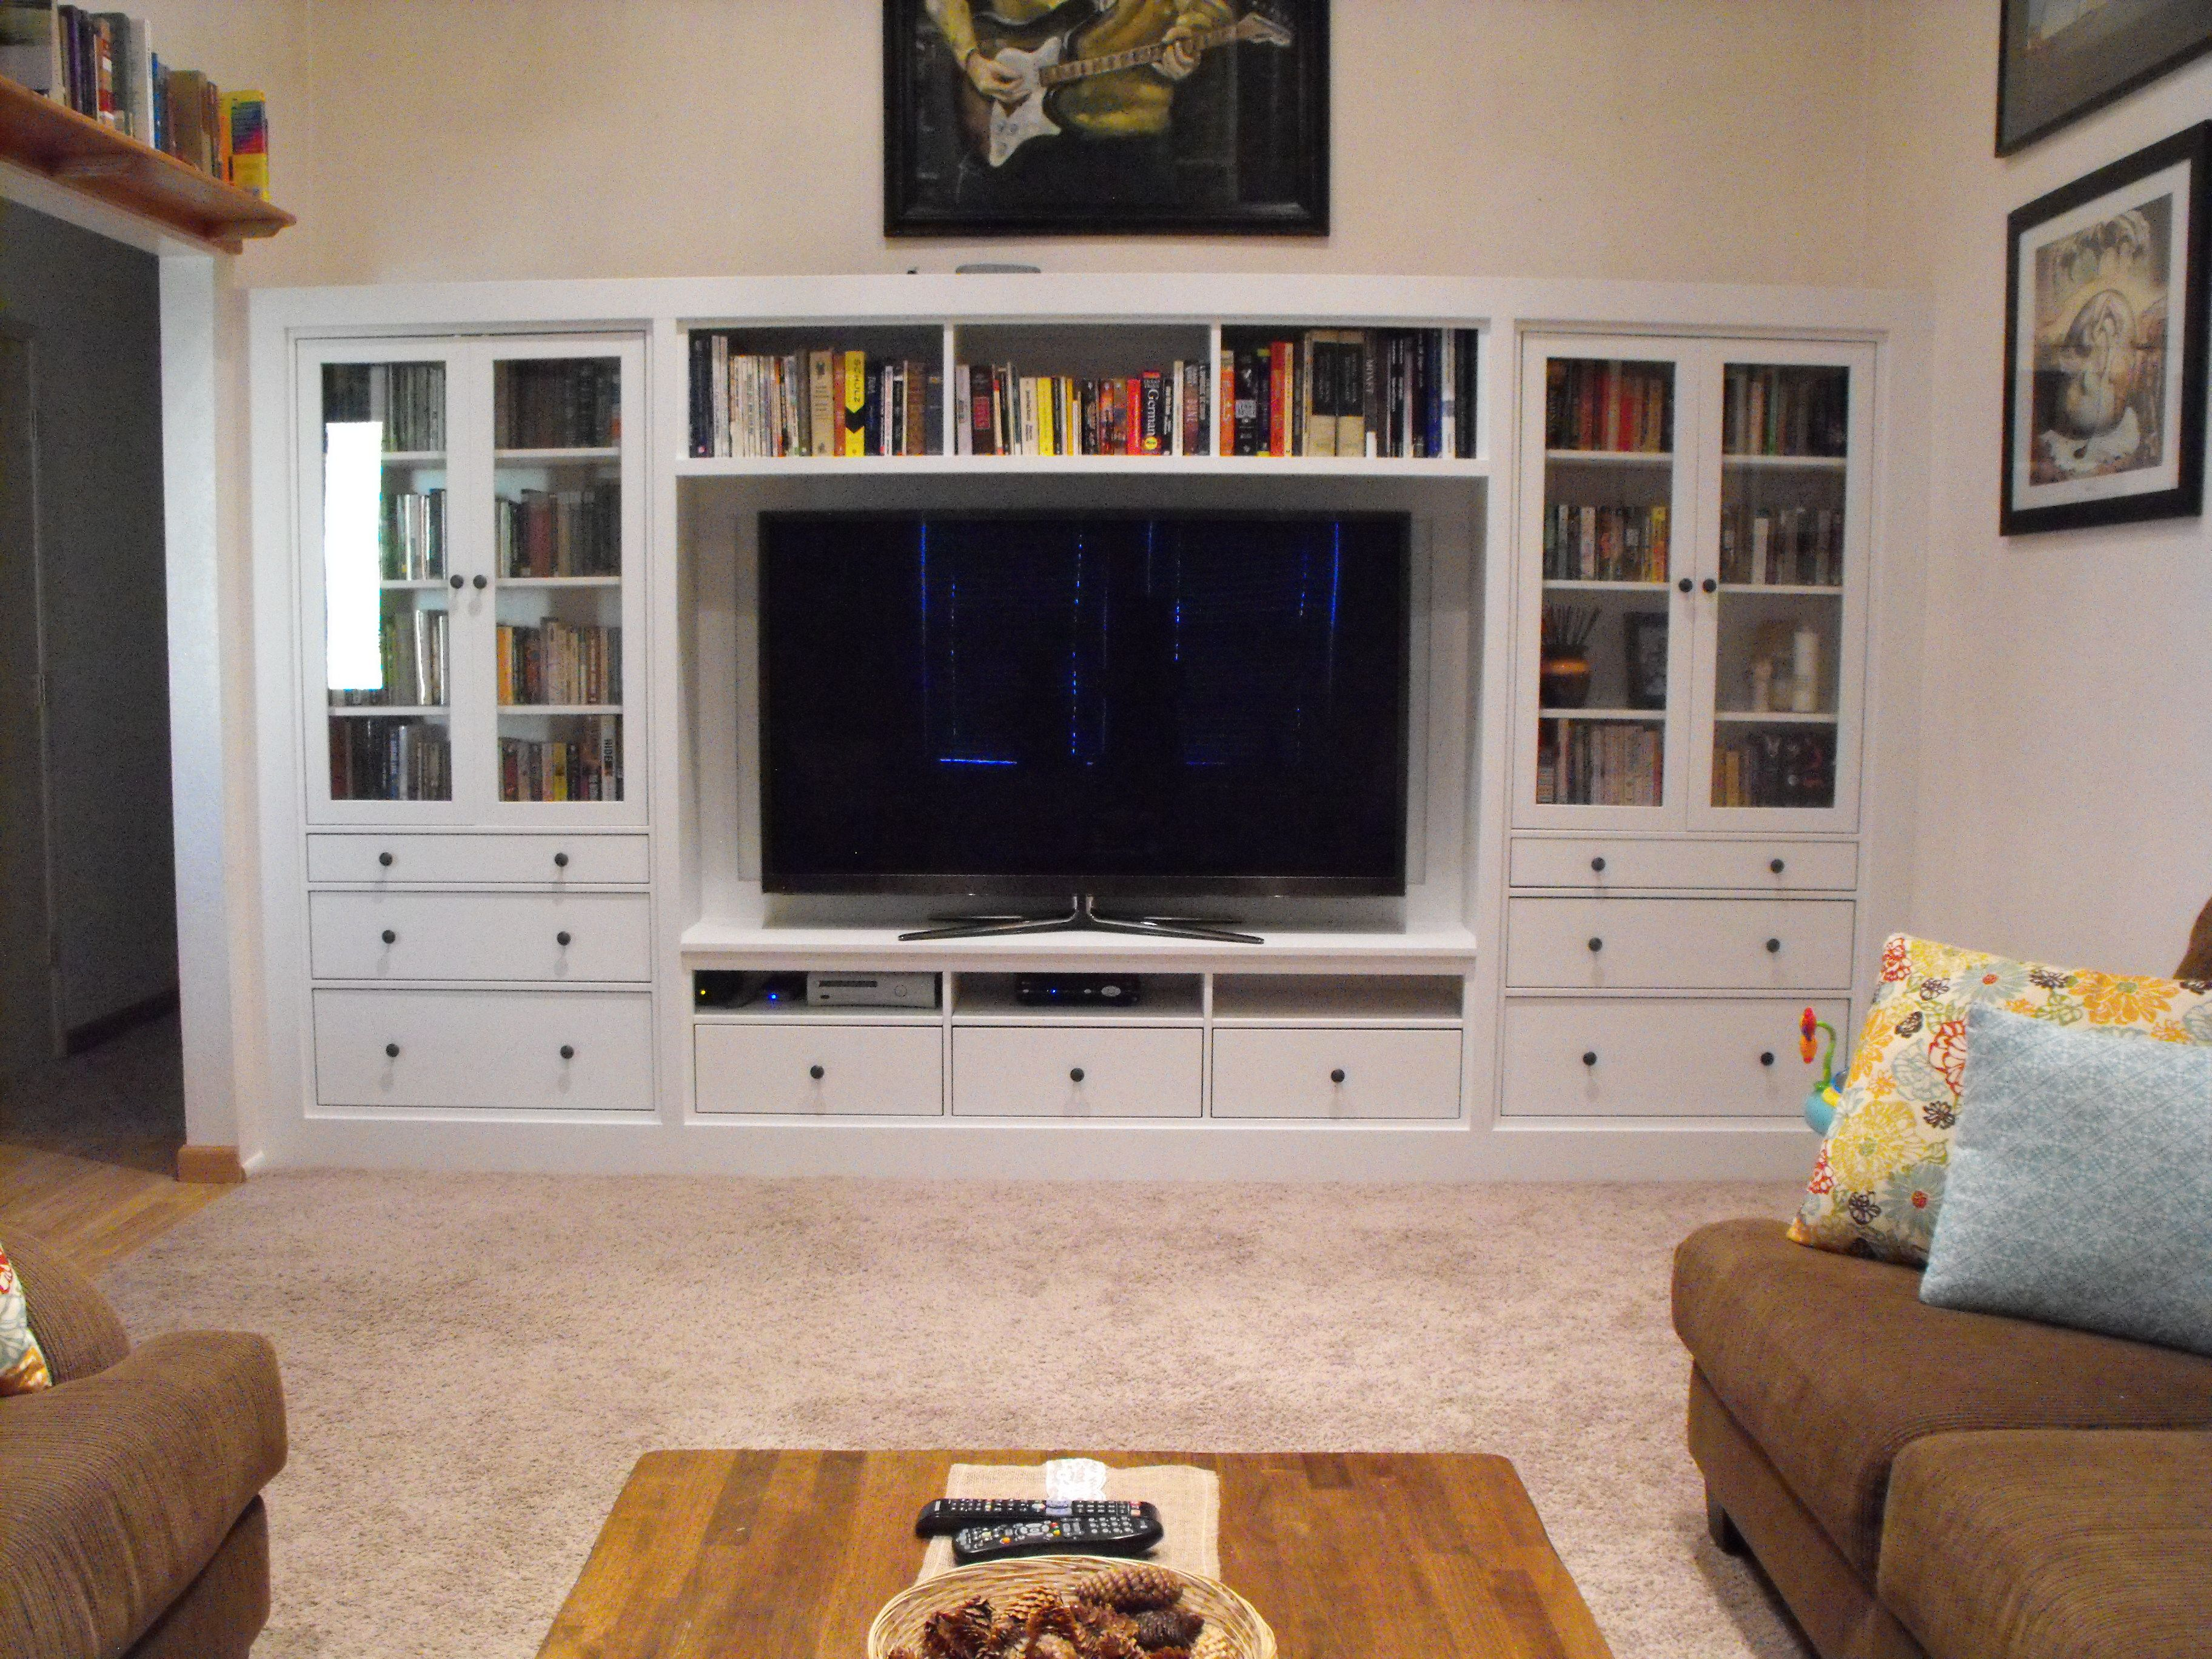 Diy Built In For The Living Room We Made Ourselves Out Of